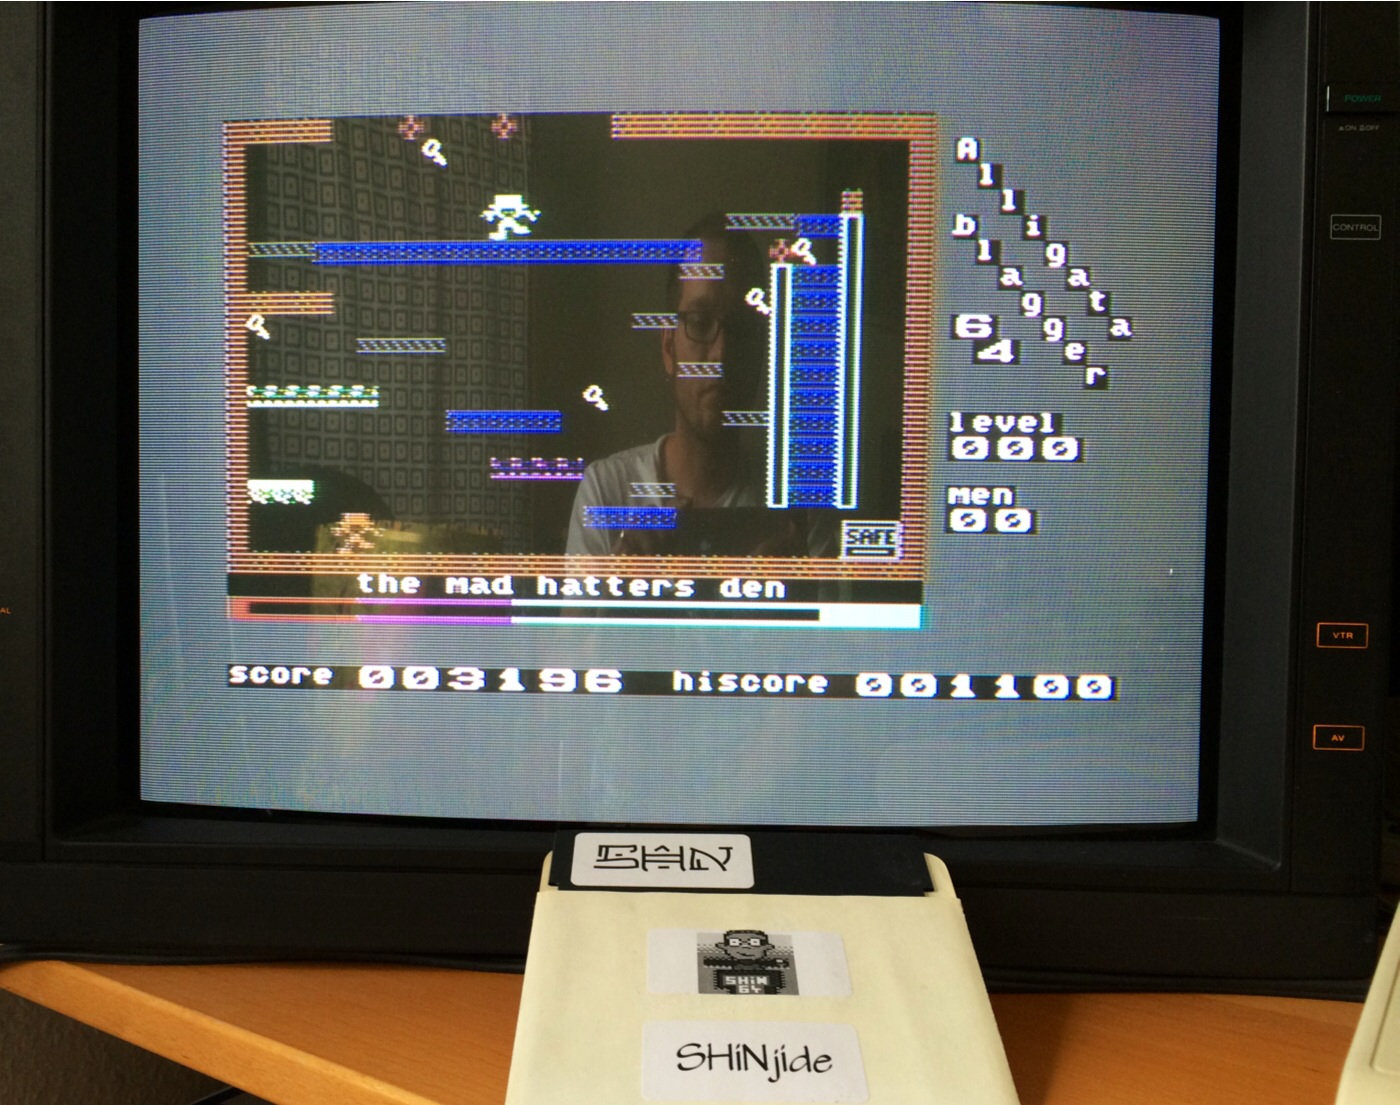 SHiNjide: Blagger (Commodore 64) 3,196 points on 2014-07-01 09:42:37